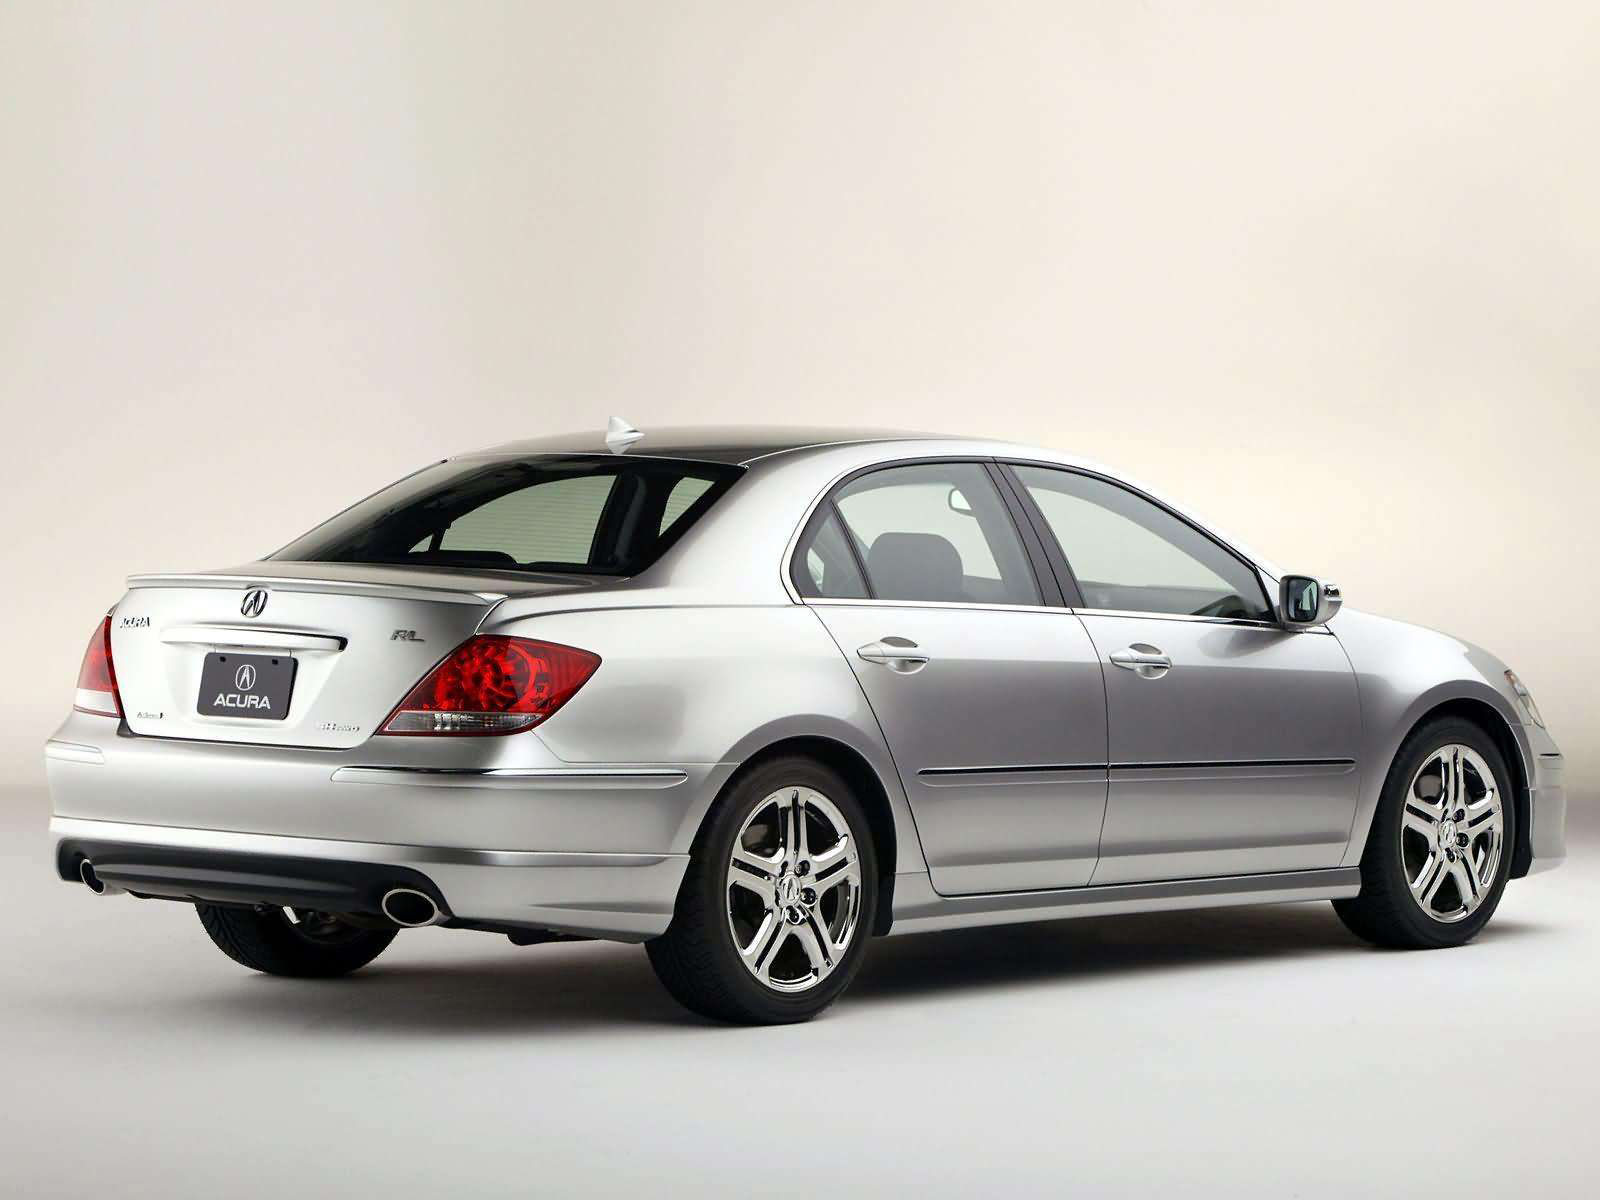 2005 acura rl with aspec performance package. Black Bedroom Furniture Sets. Home Design Ideas